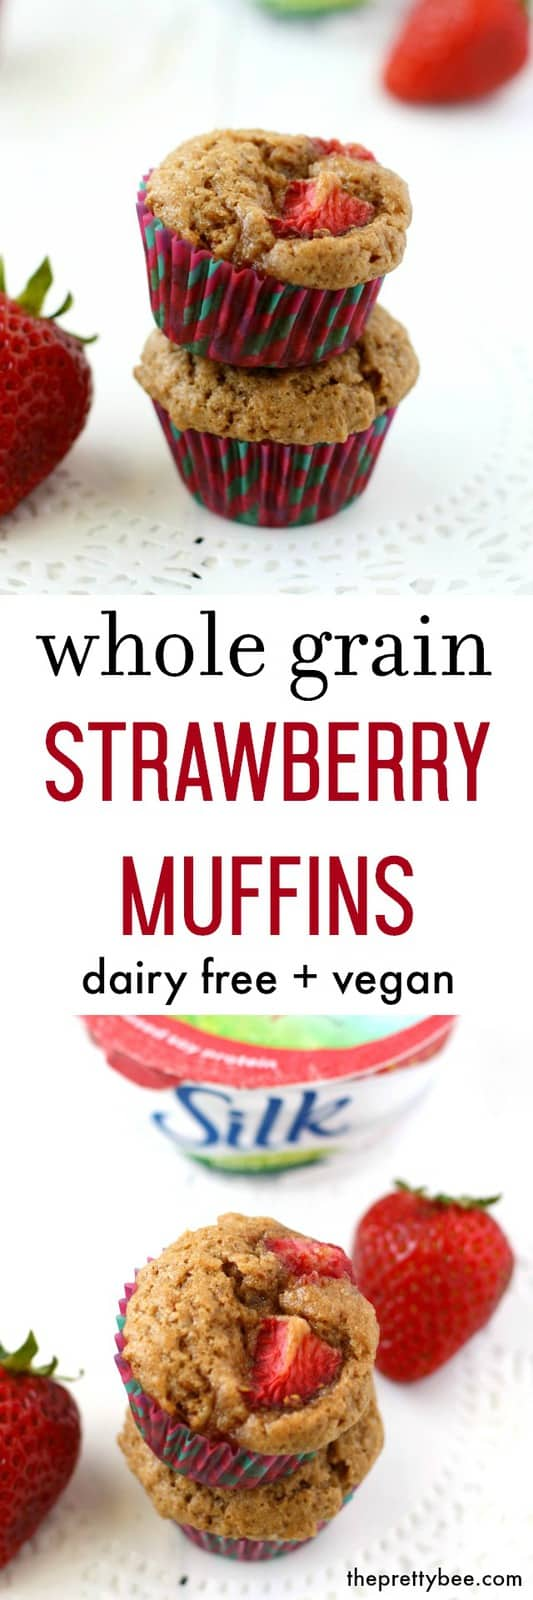 Whole grain strawberry muffins are the perfect little sweet treat for breakfast or a snack! Dairy free and vegan recipe. #ad